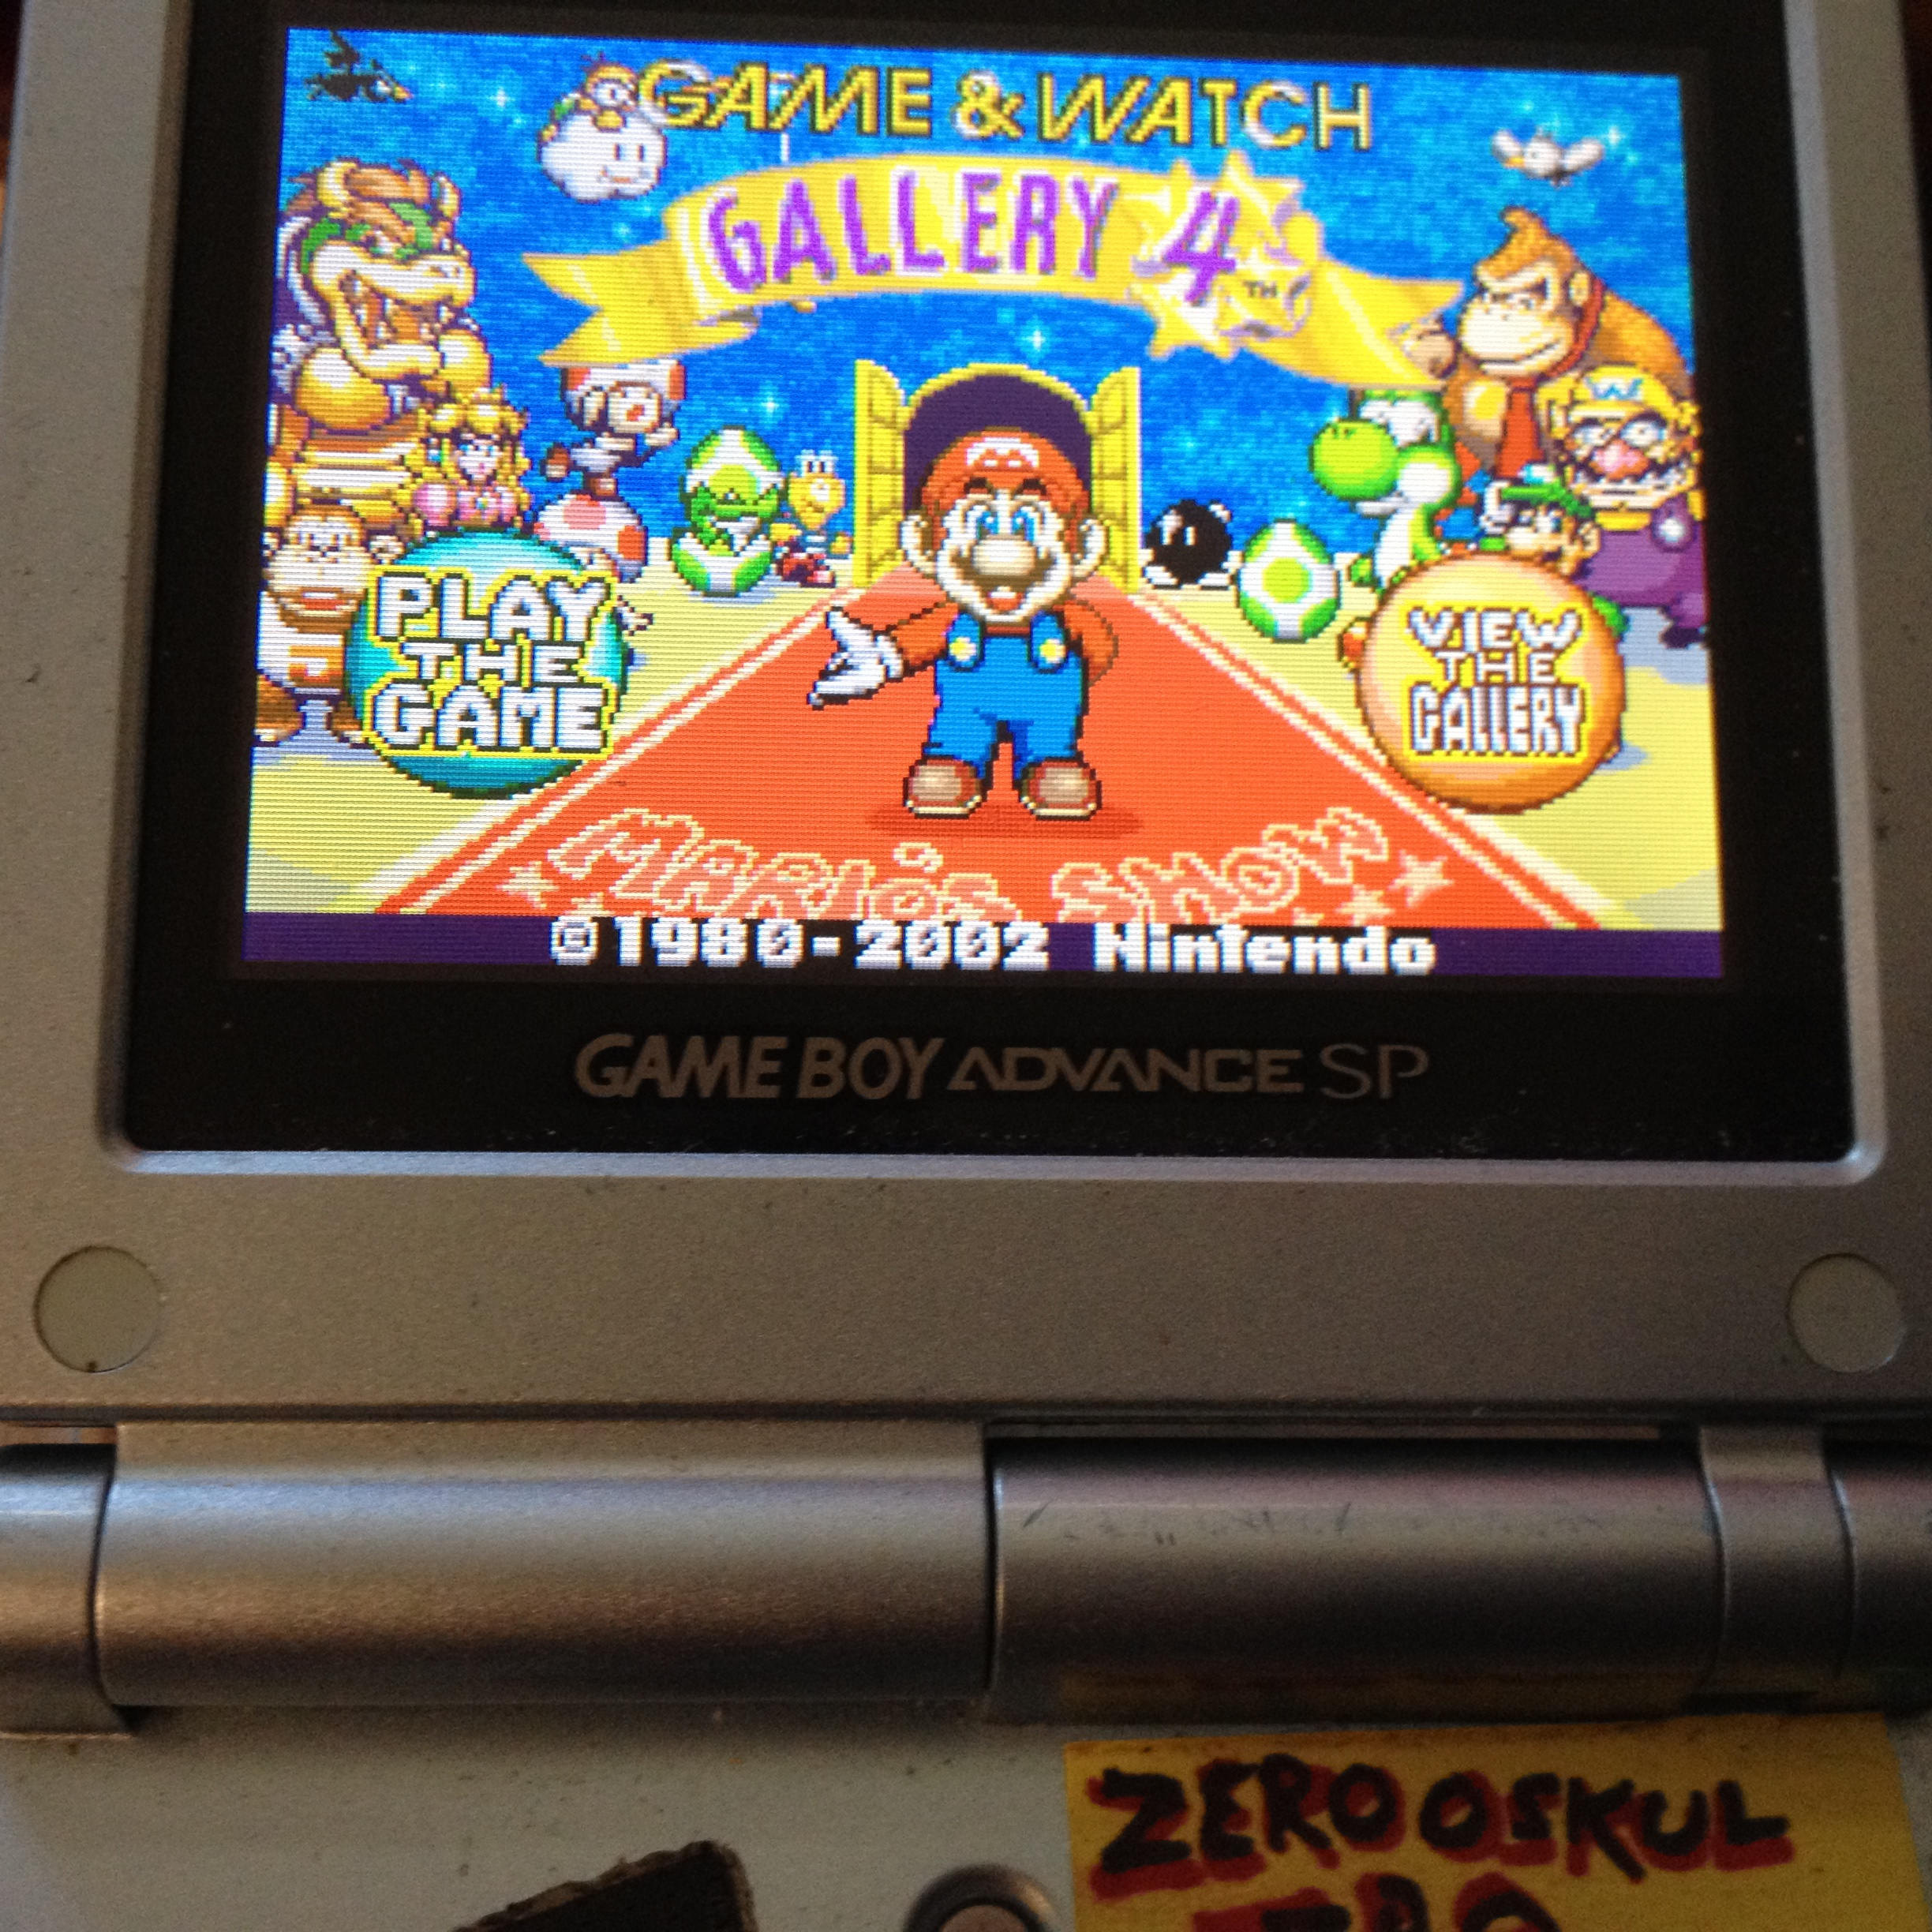 zerooskul: Game & Watch Gallery 4: Fire Attack [Classic: Hard] (GBA) 476 points on 2019-08-11 15:42:40